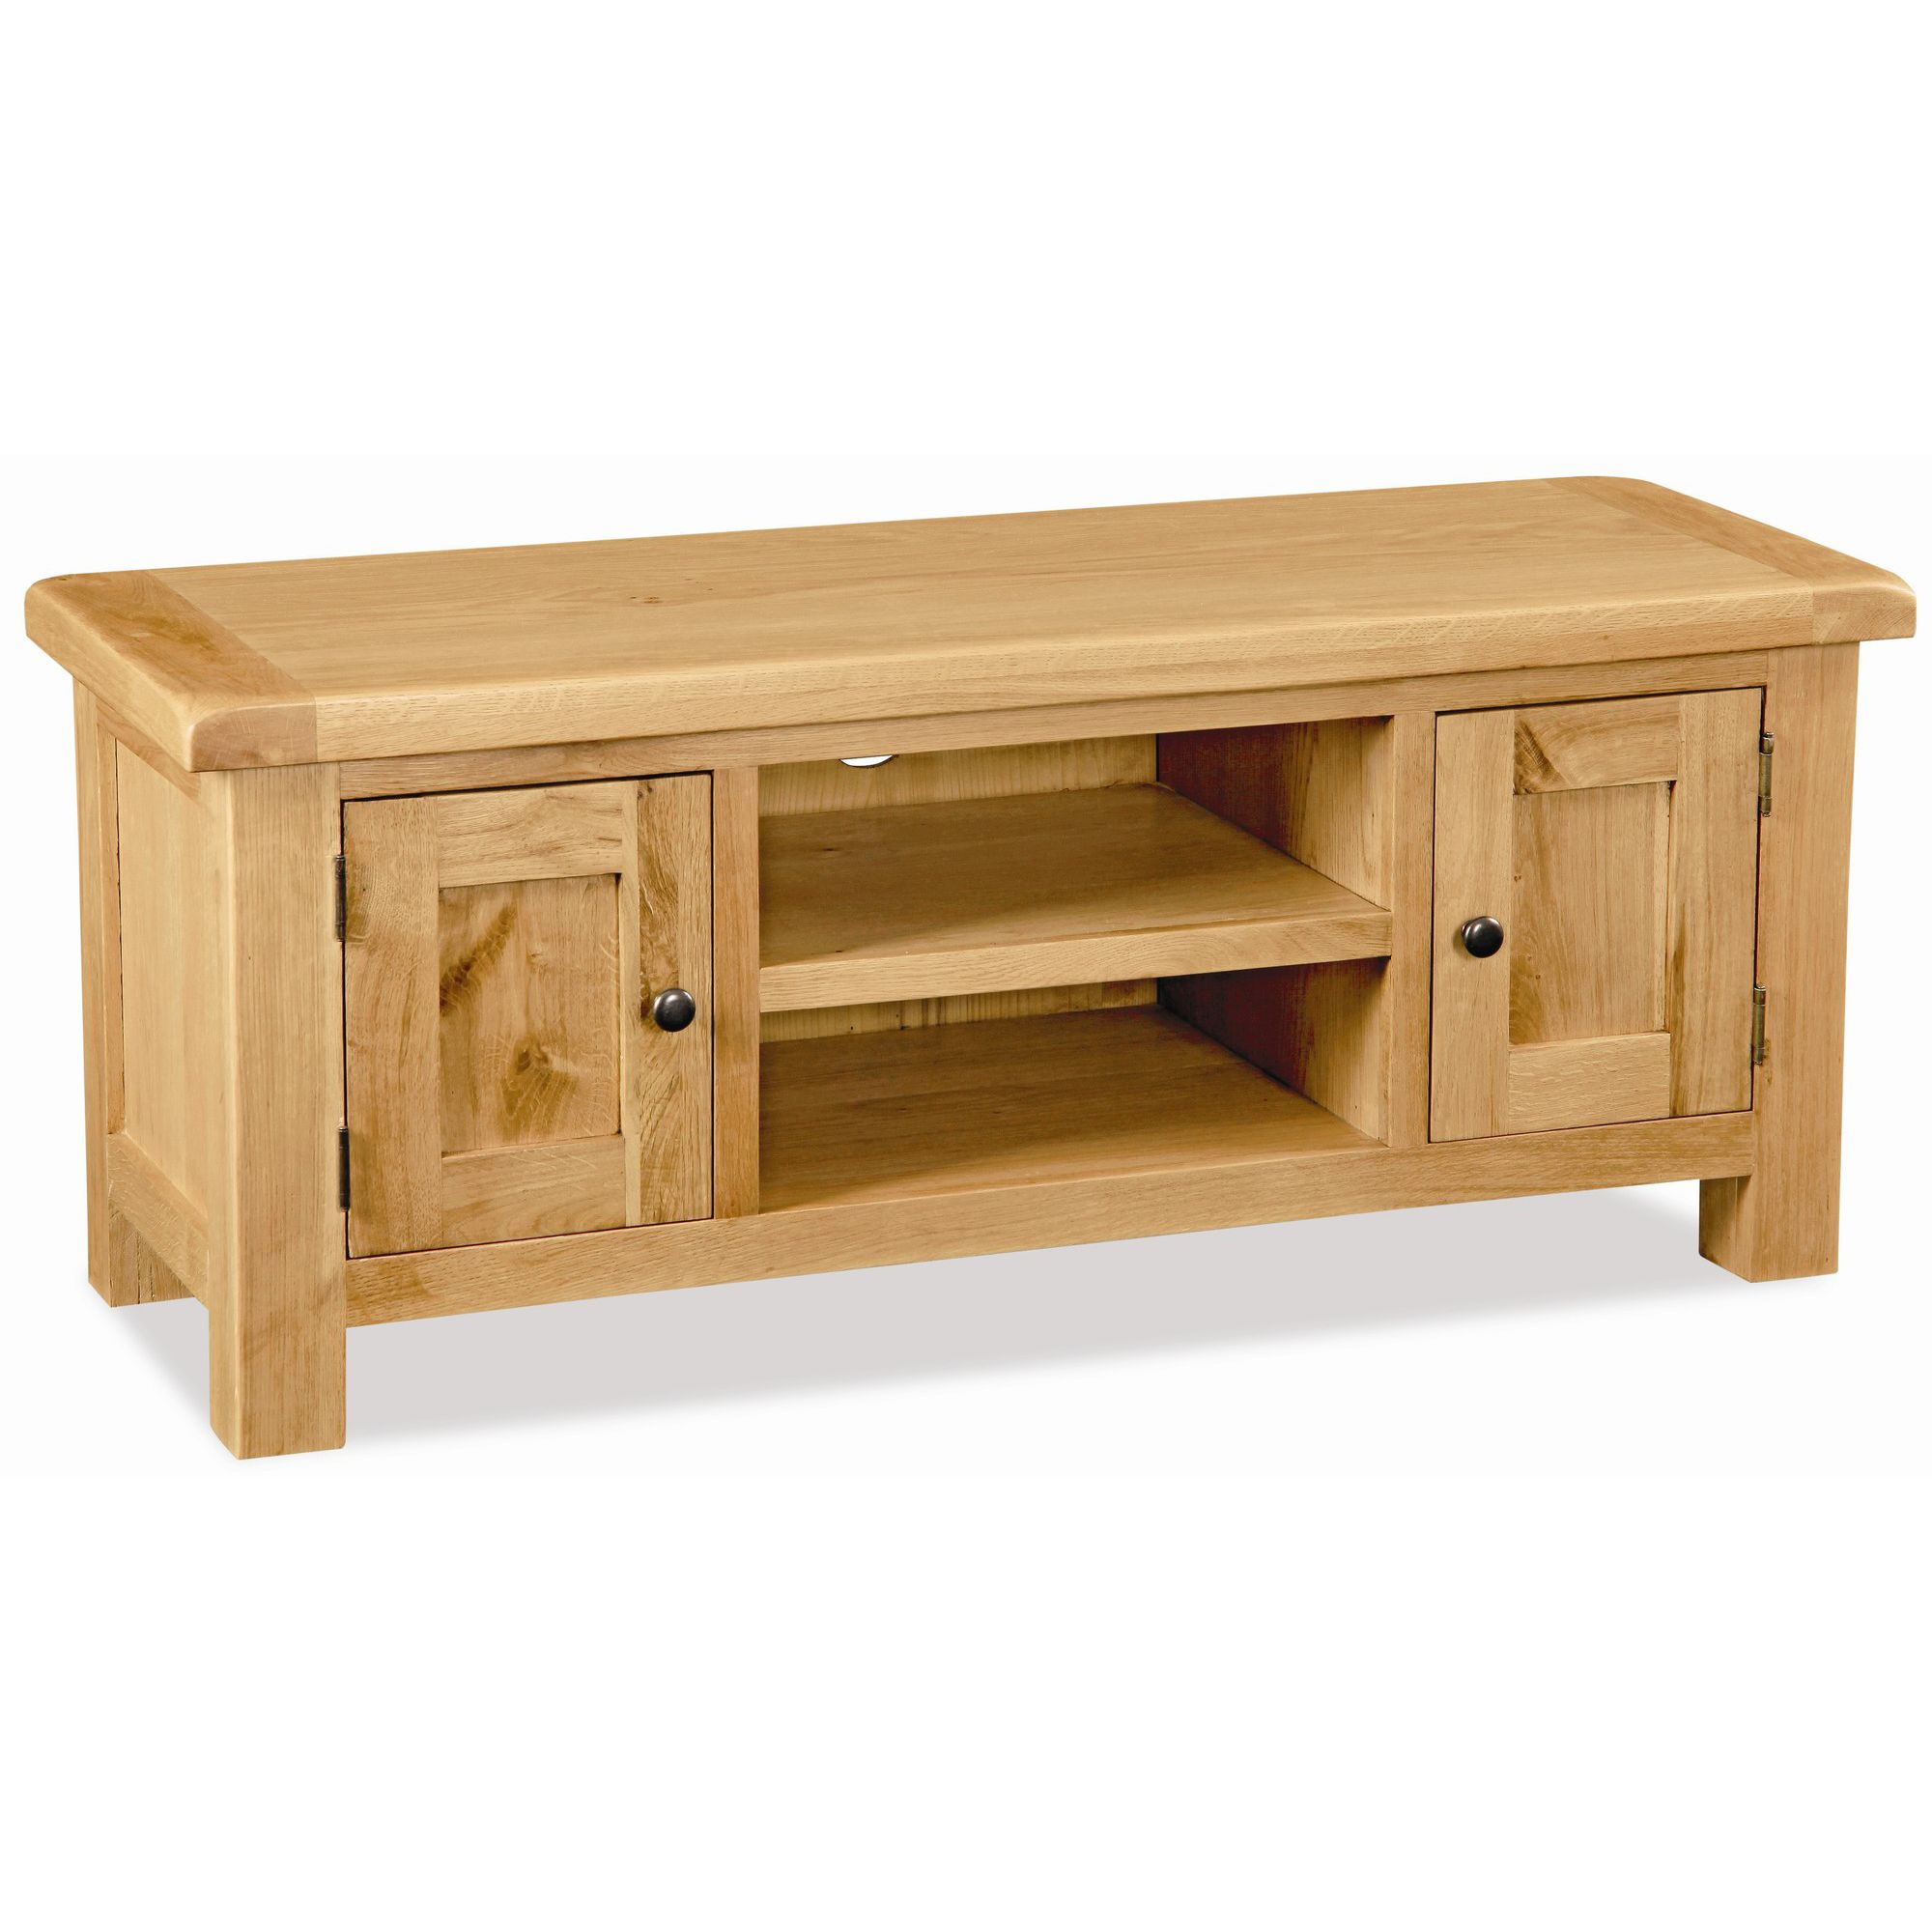 Alterton Furniture Pemberley TV Cabinet - Large at Tesco Direct